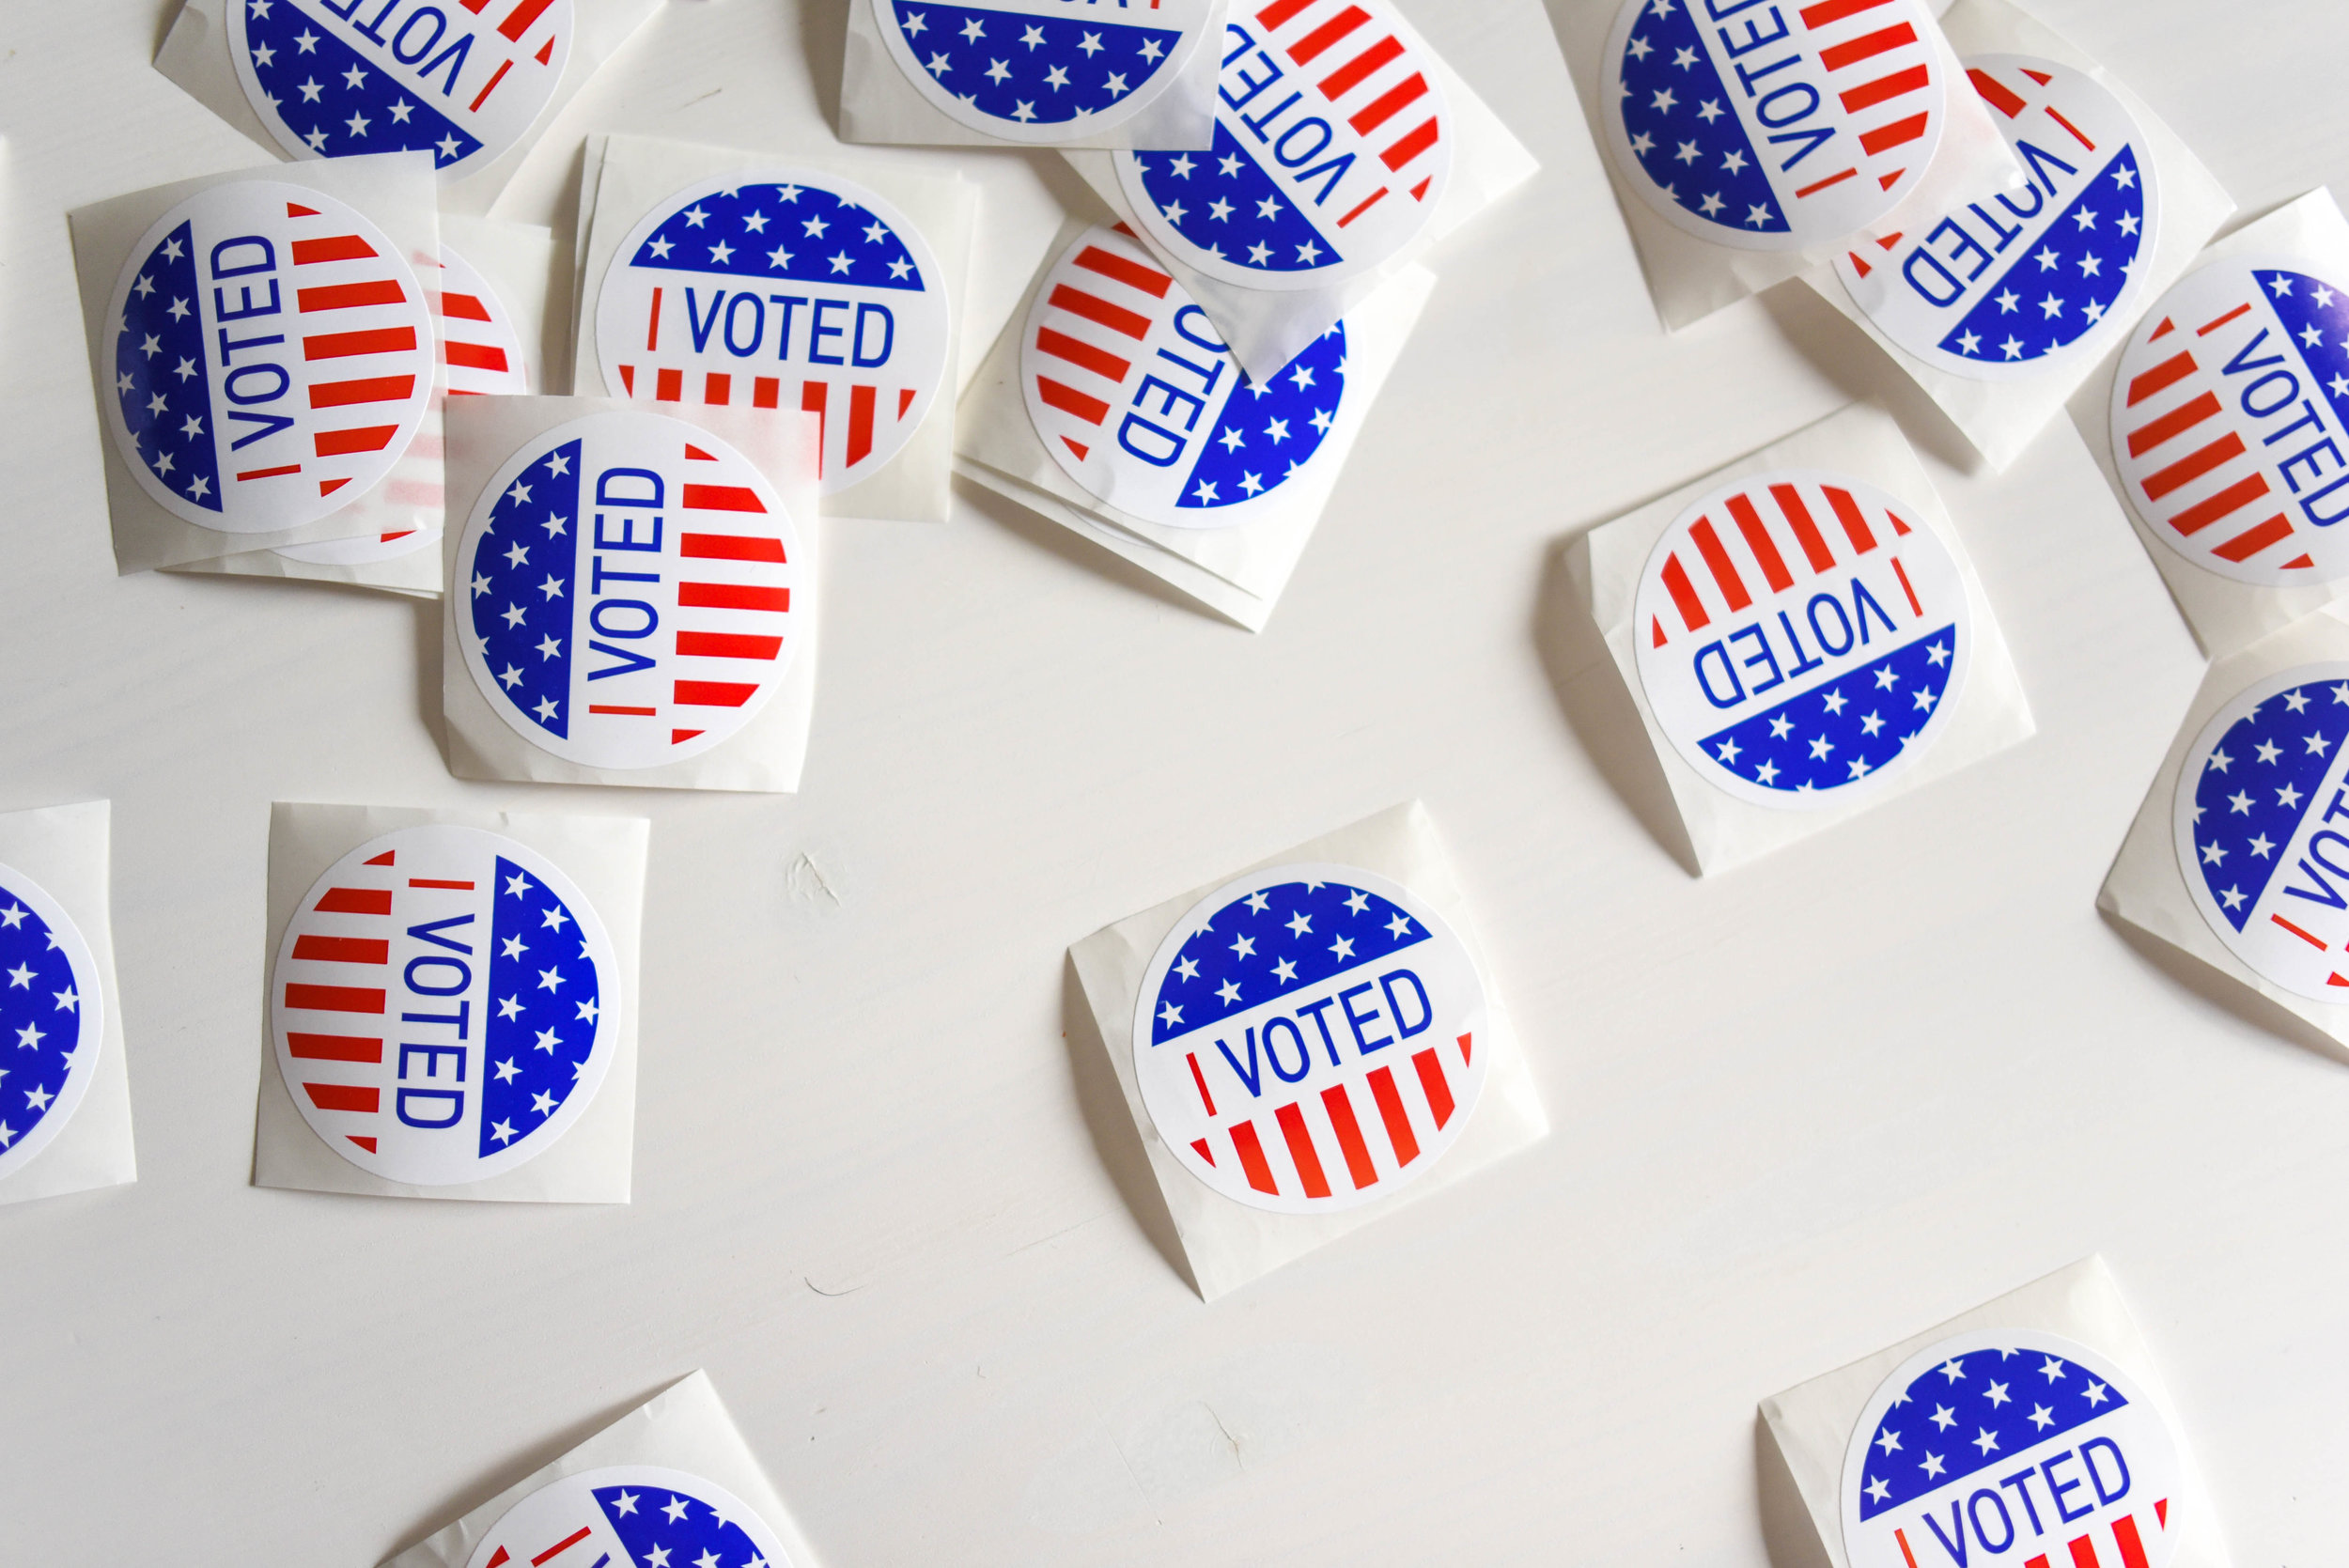 STEP 3: KNOW WHAT'S ON YOUR BALLOT - Be informed before the big day - be sure to do the following:1. Find your polling location2. Know what's on your ballot3. Bring your photo ID!4. Know you have the right to curbside voting and other accessibility services